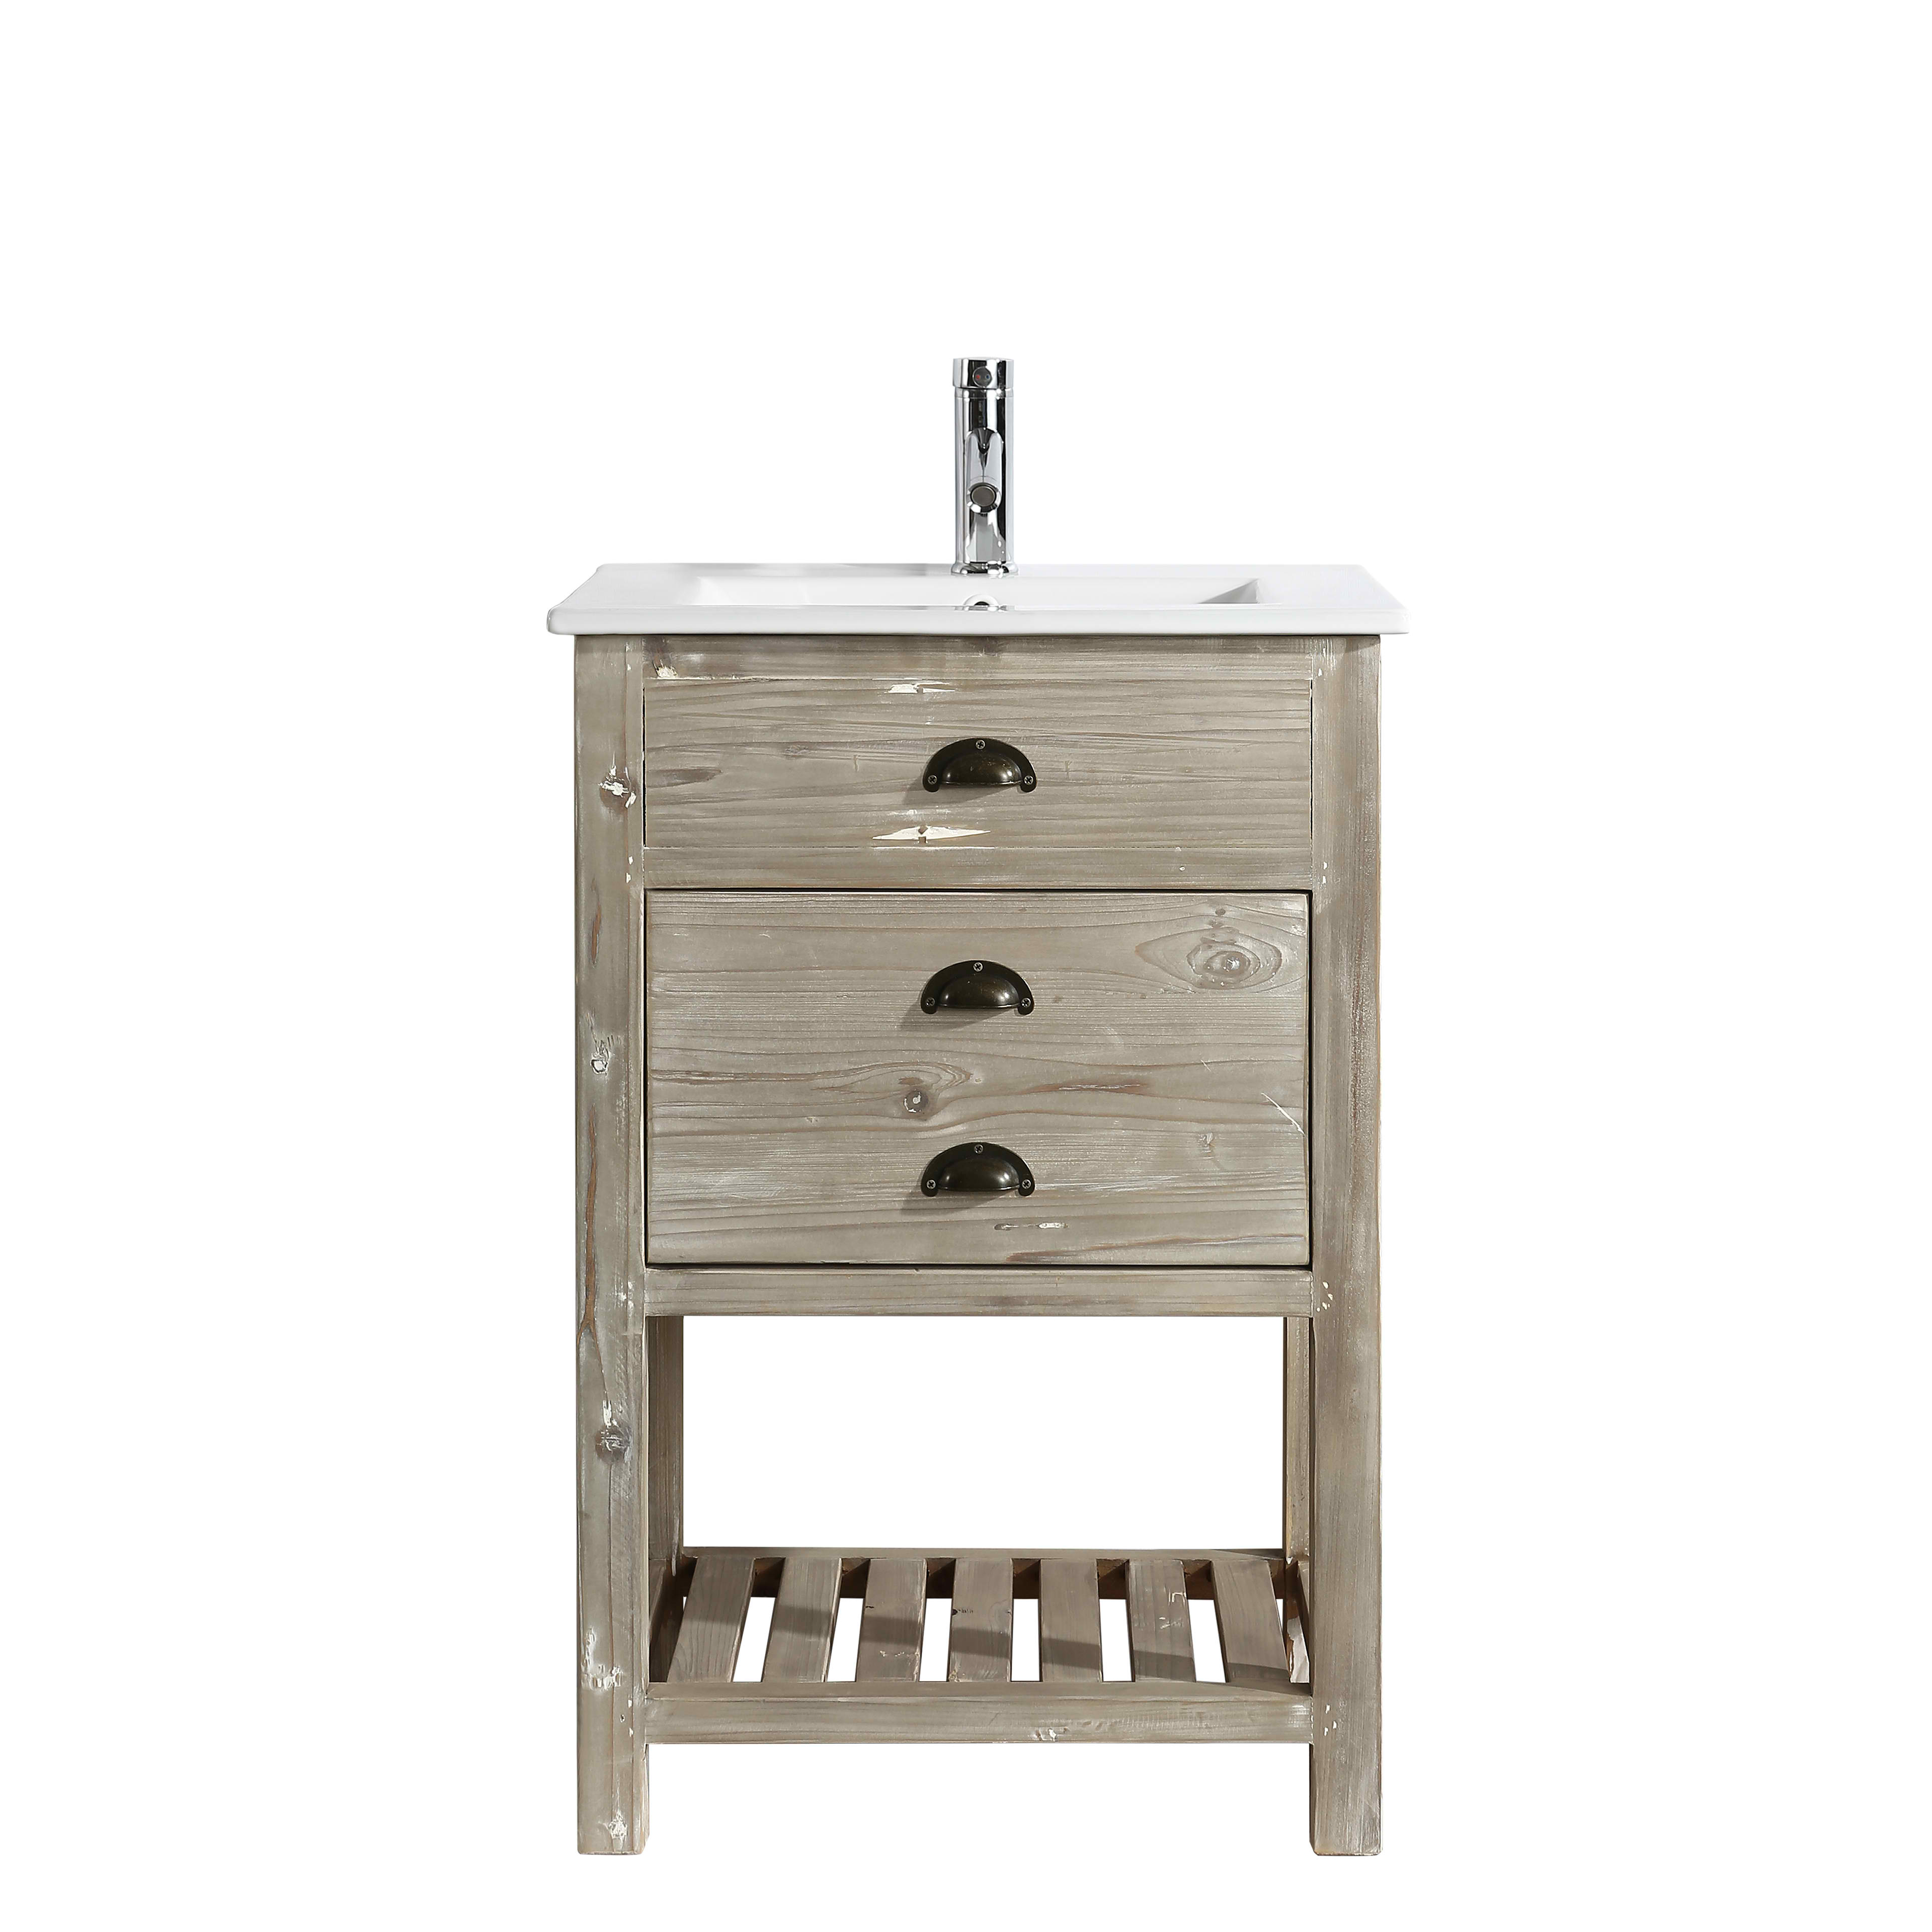 "24"" Rustic Single Sink Bathroom Vanity with Porcelain Integrated Counterop in Natural Distressed Wood Finish"